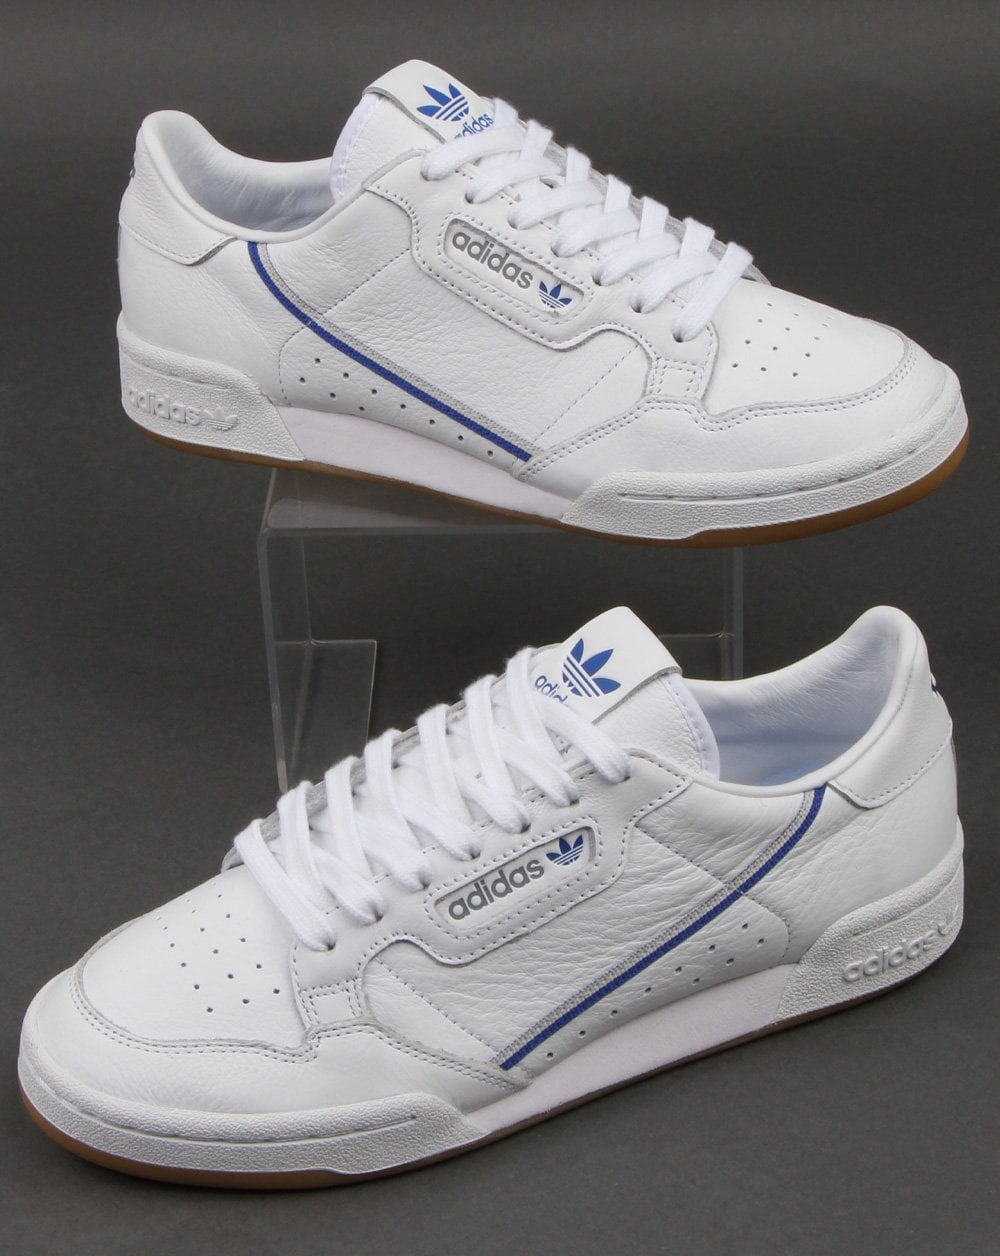 Adidas Continental 80 x TFL Trainers Whitegreyblue